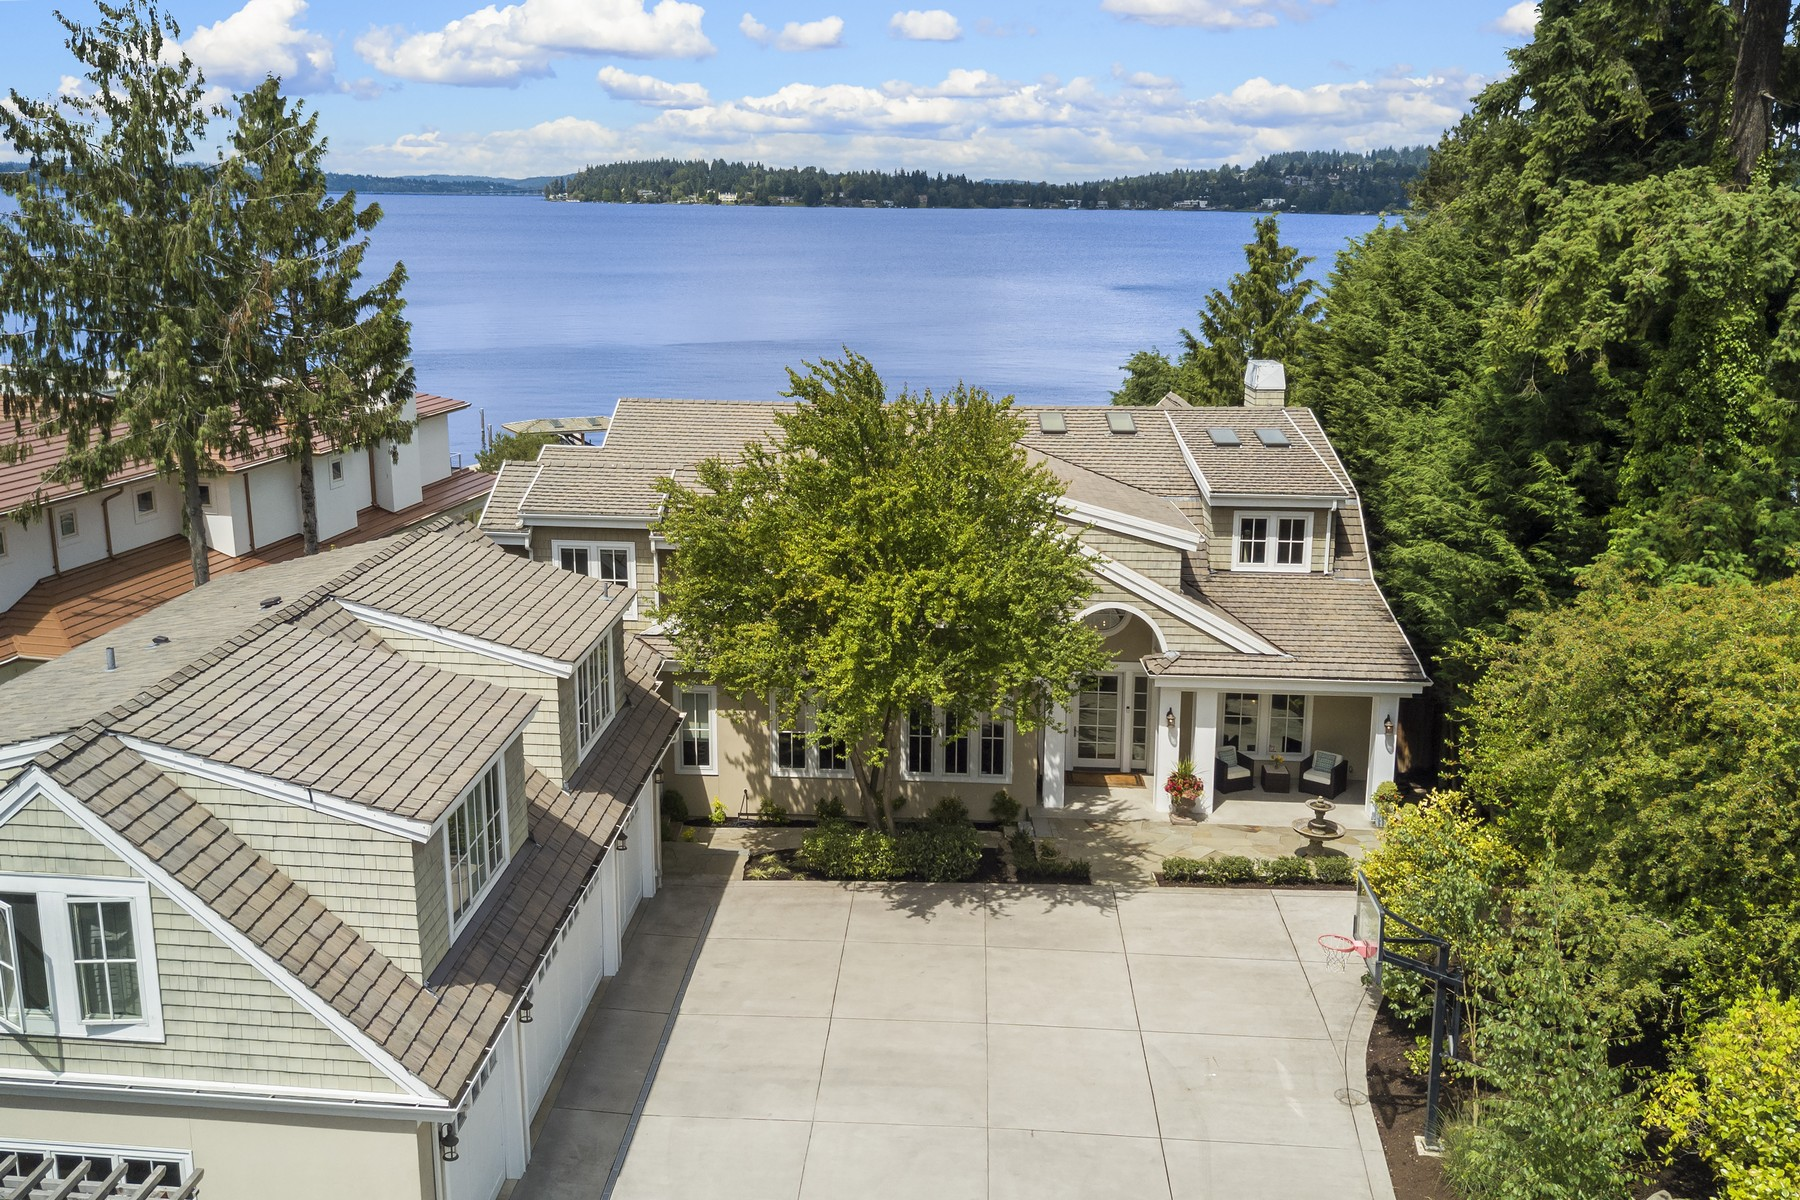 Villa per Vendita alle ore Luxury on the Lake 7450 N Mercer Wy Mercer Island, Washington, 98040 Stati Uniti